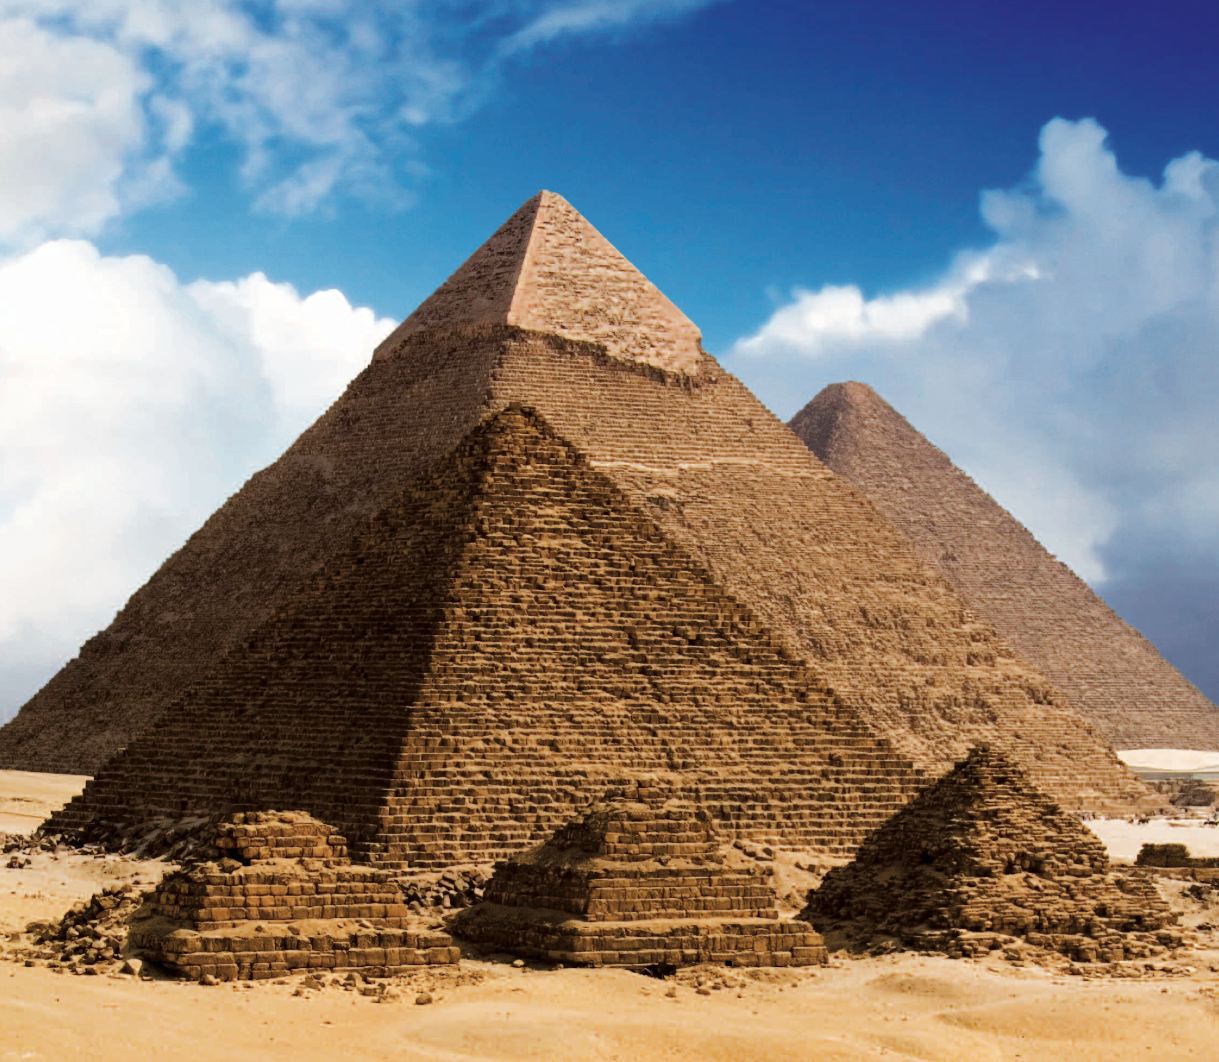 the egyptian pyramids as a form This story appears in the january/february 2017 issue of national geographic history magazine  egyptian calendar suggest the pyramids were  form of the.